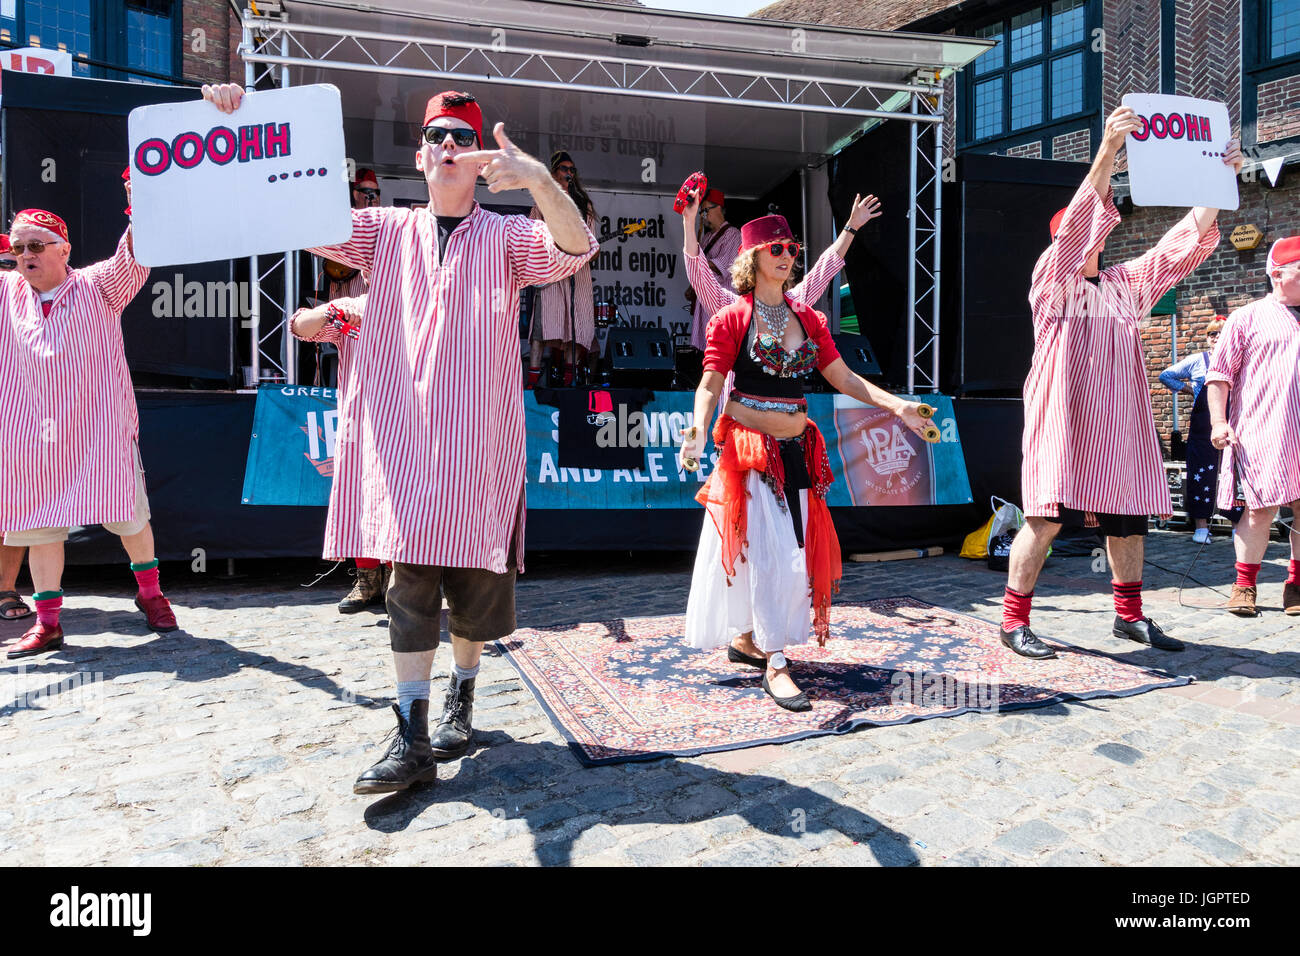 Fabulous Fezheads musical group perform gig at the Ken coastal town of Sandwich during the Folk and Ale festival. - Stock Image